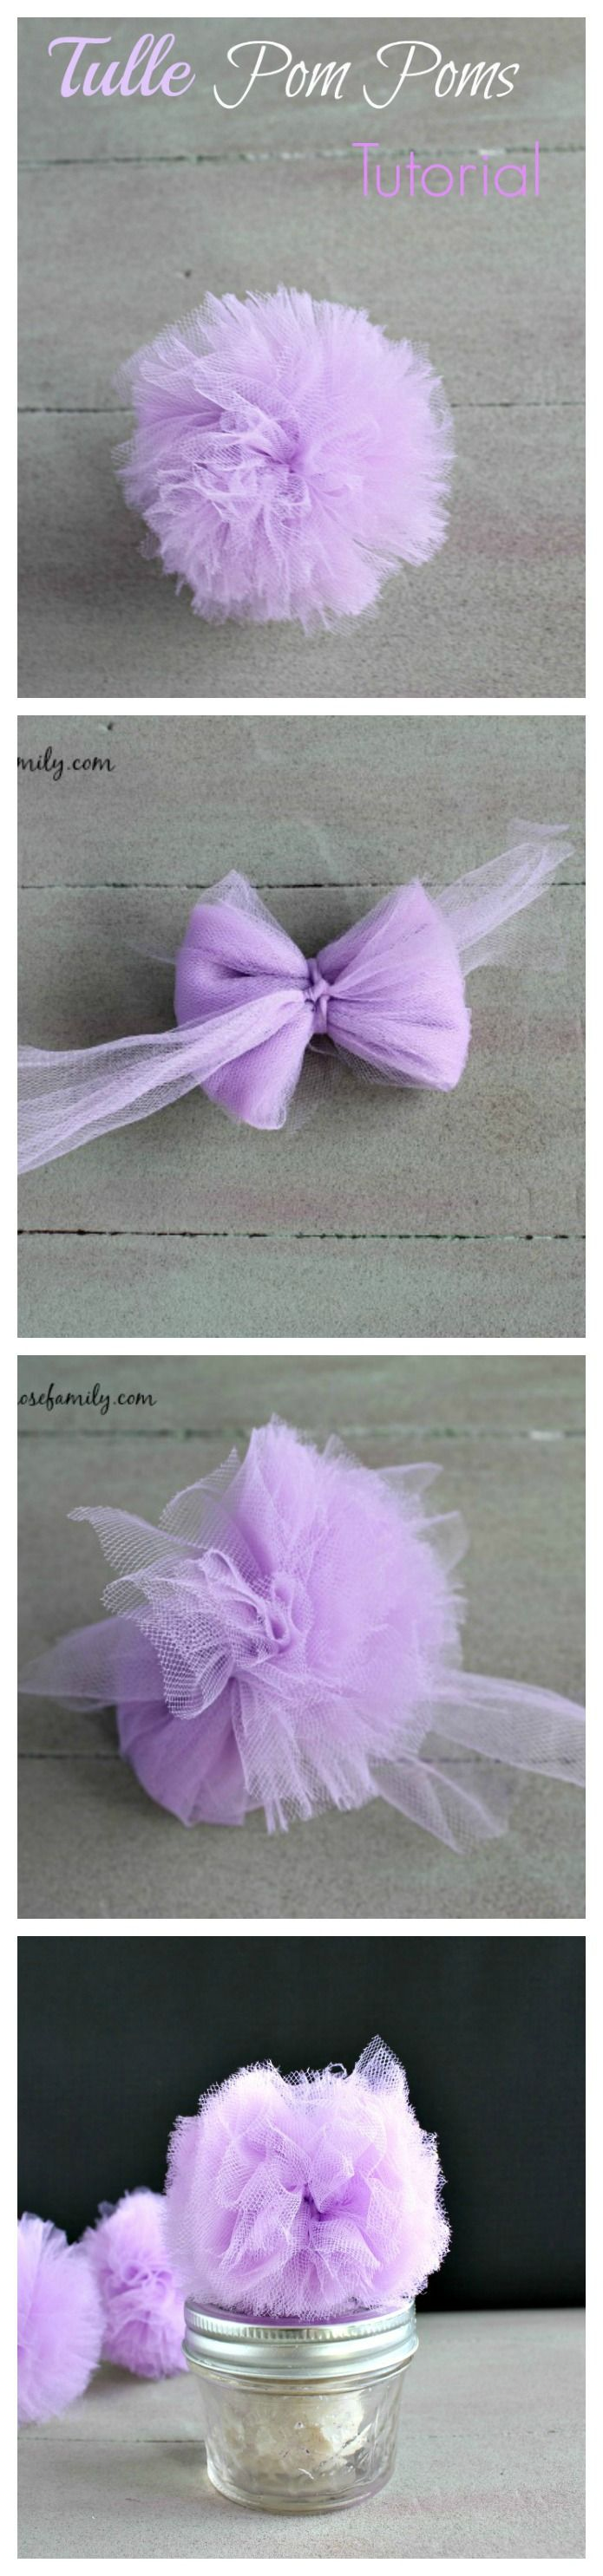 Tulle Pom Poms Tutorial www.thenymelrosefamily.com #partyplanning #decorations